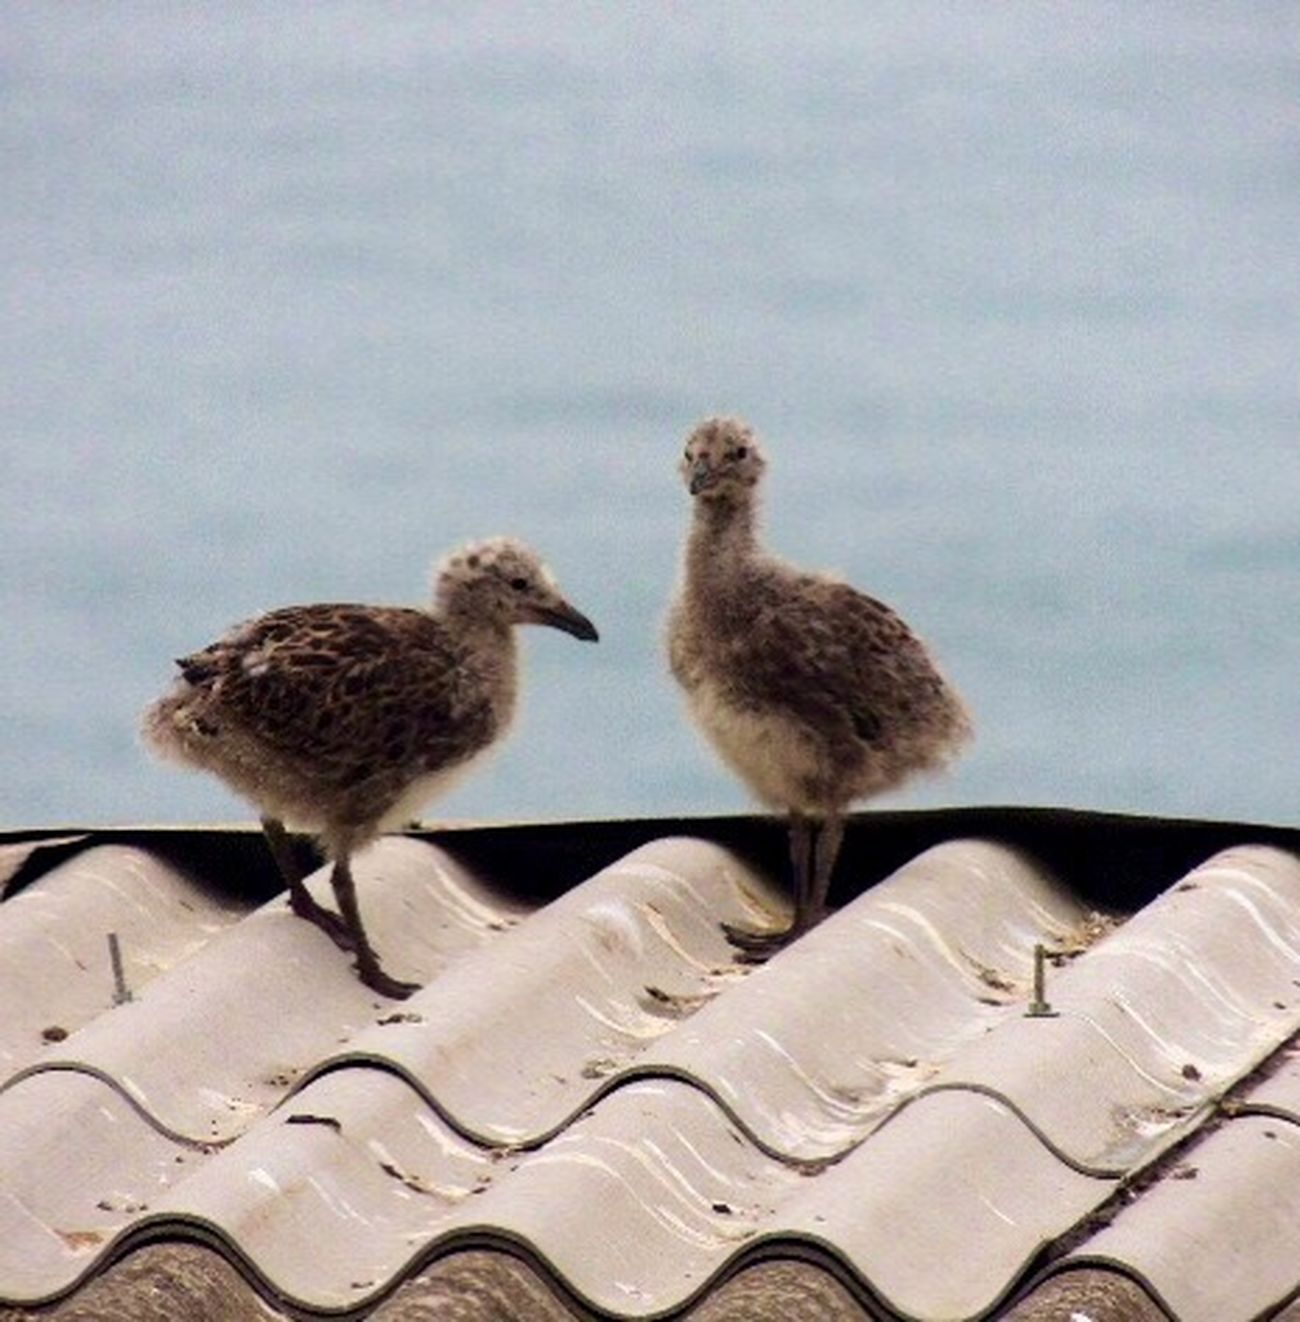 One month later... Have A Nice Week! Chicks Seagulls Seagulls And Sea Birds Of EyeEm  Bird Photography The Life Of Birds From My Lens Capture The Moment FromChile Reñaca Beach , Chile